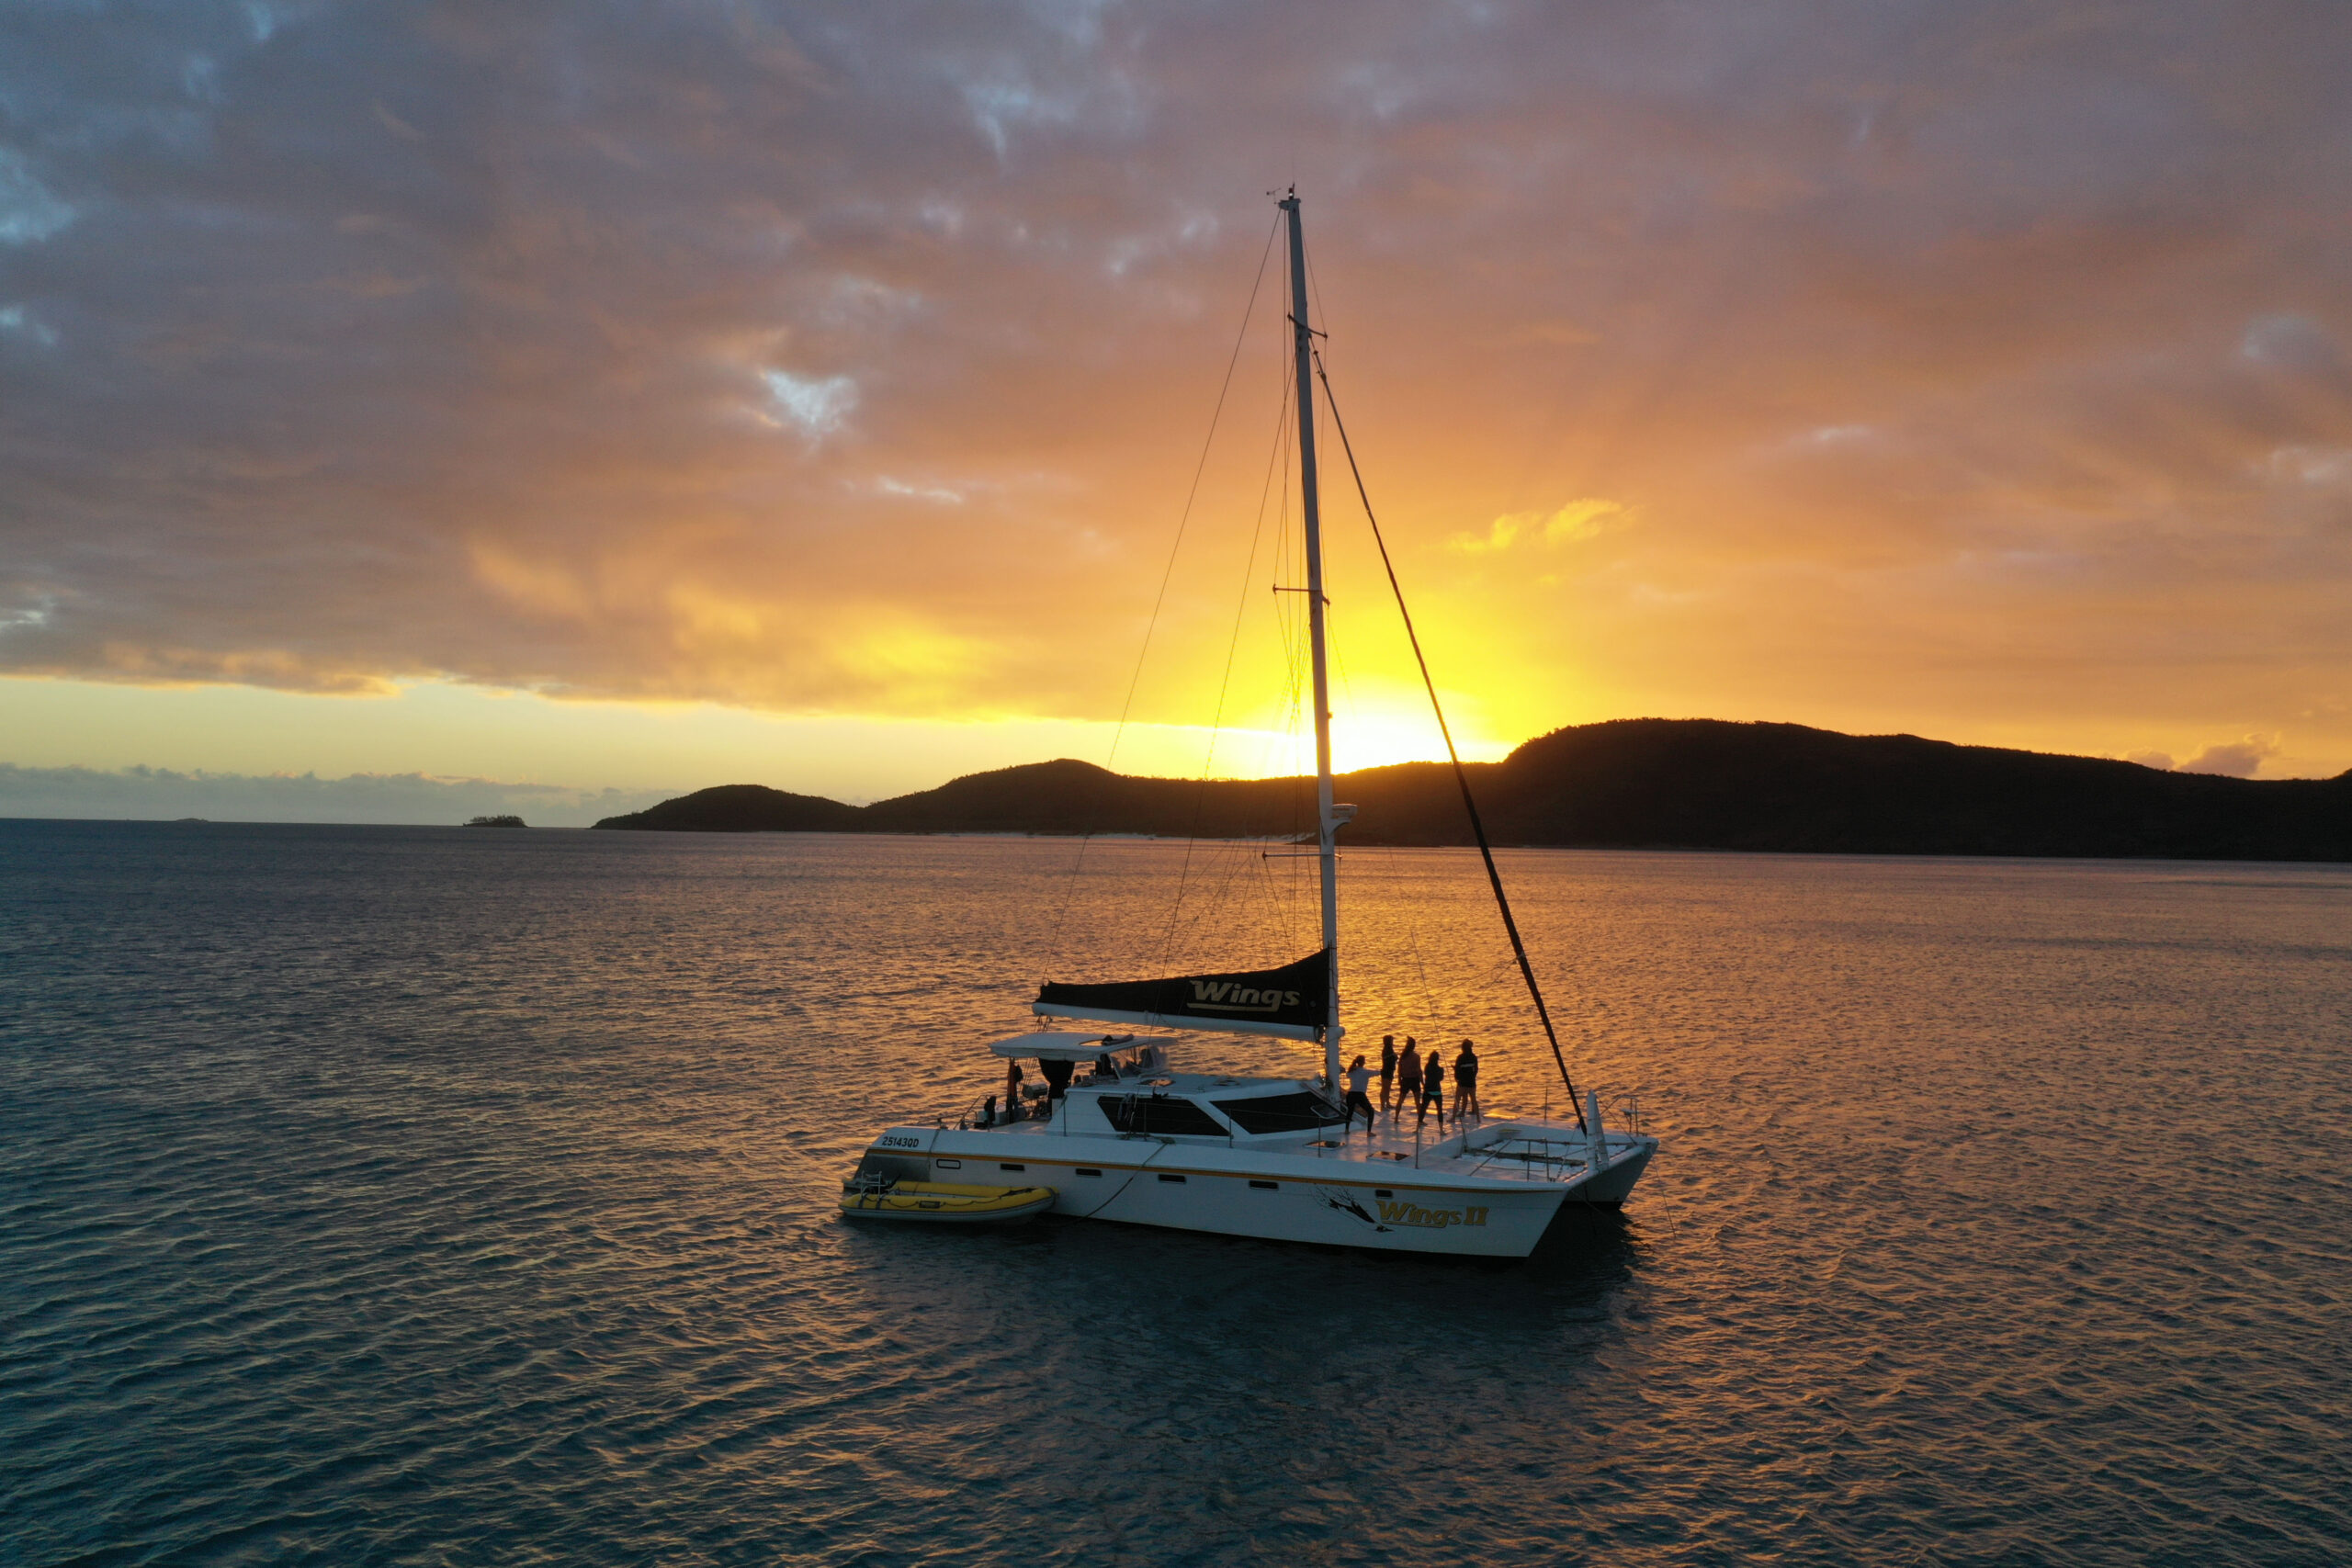 New Year Eve Sunset Sail On The Bay- 31st December- SPECIAL EVENT